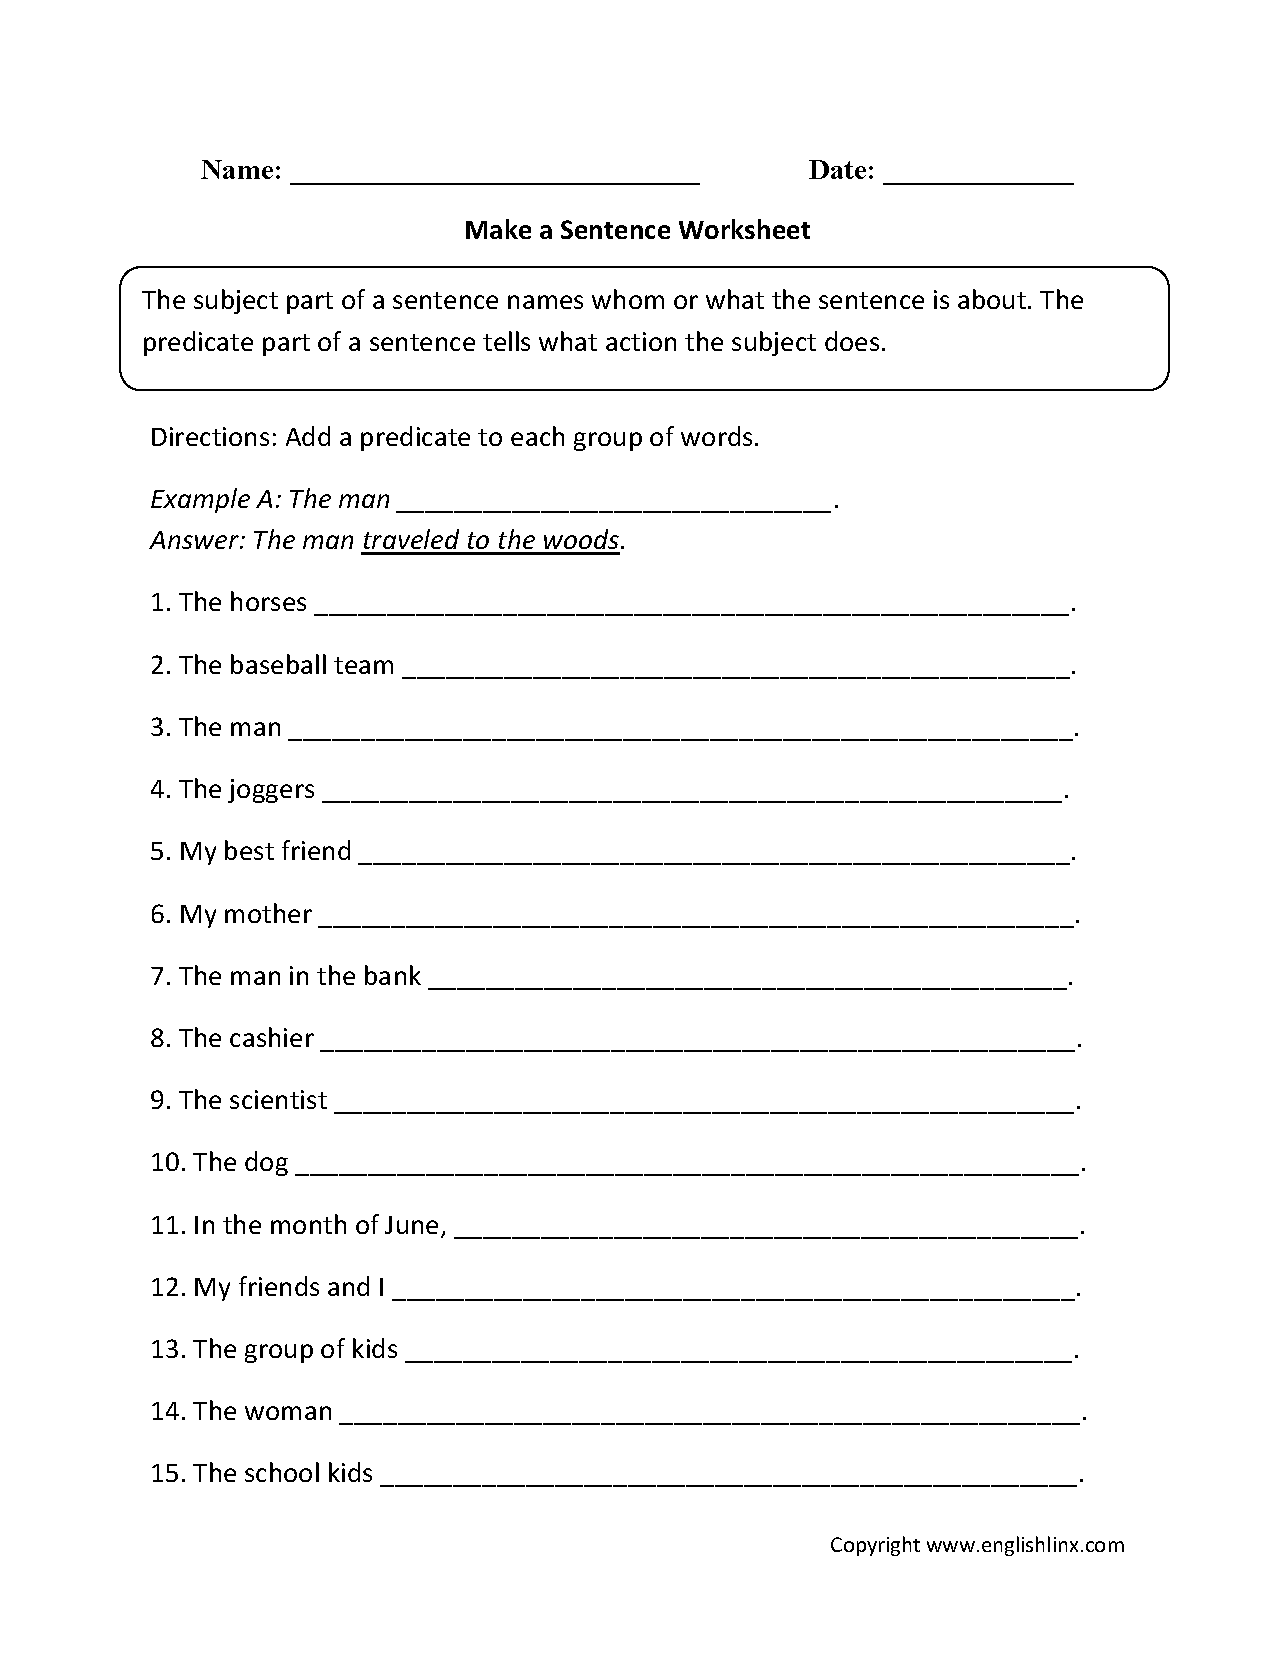 Make A Sentence Worksheet With Images